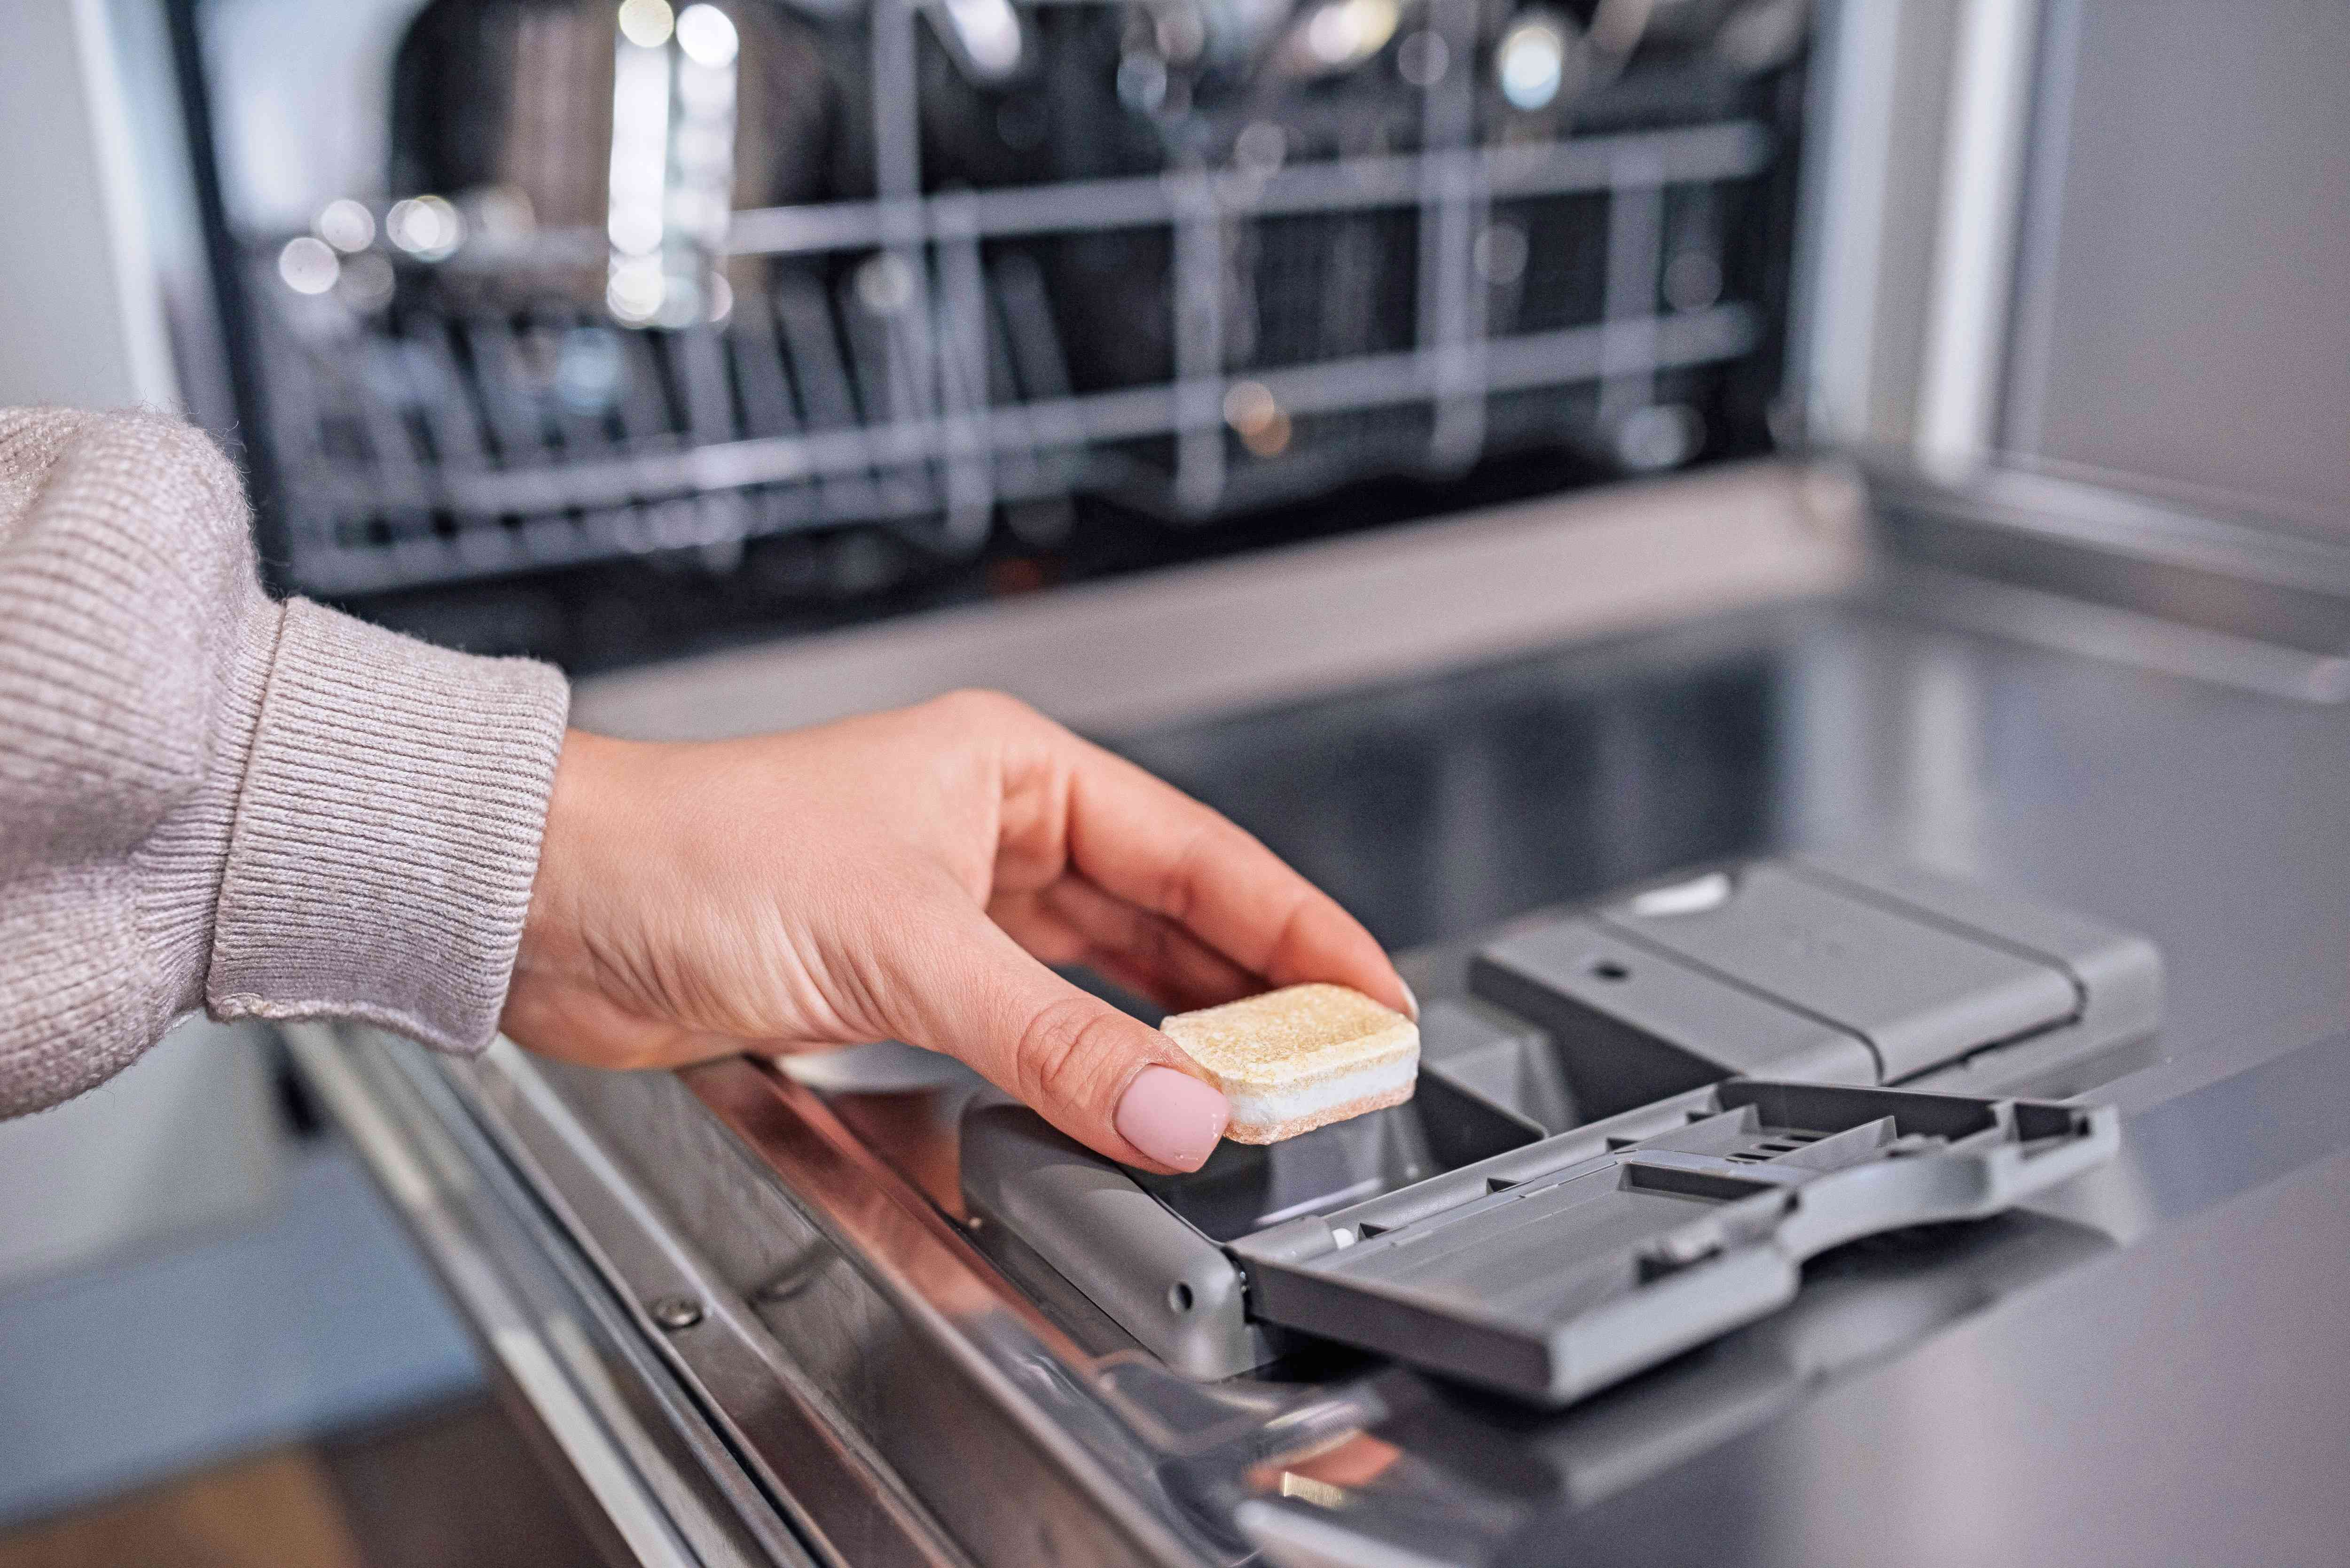 placing detergent in the dishwasher